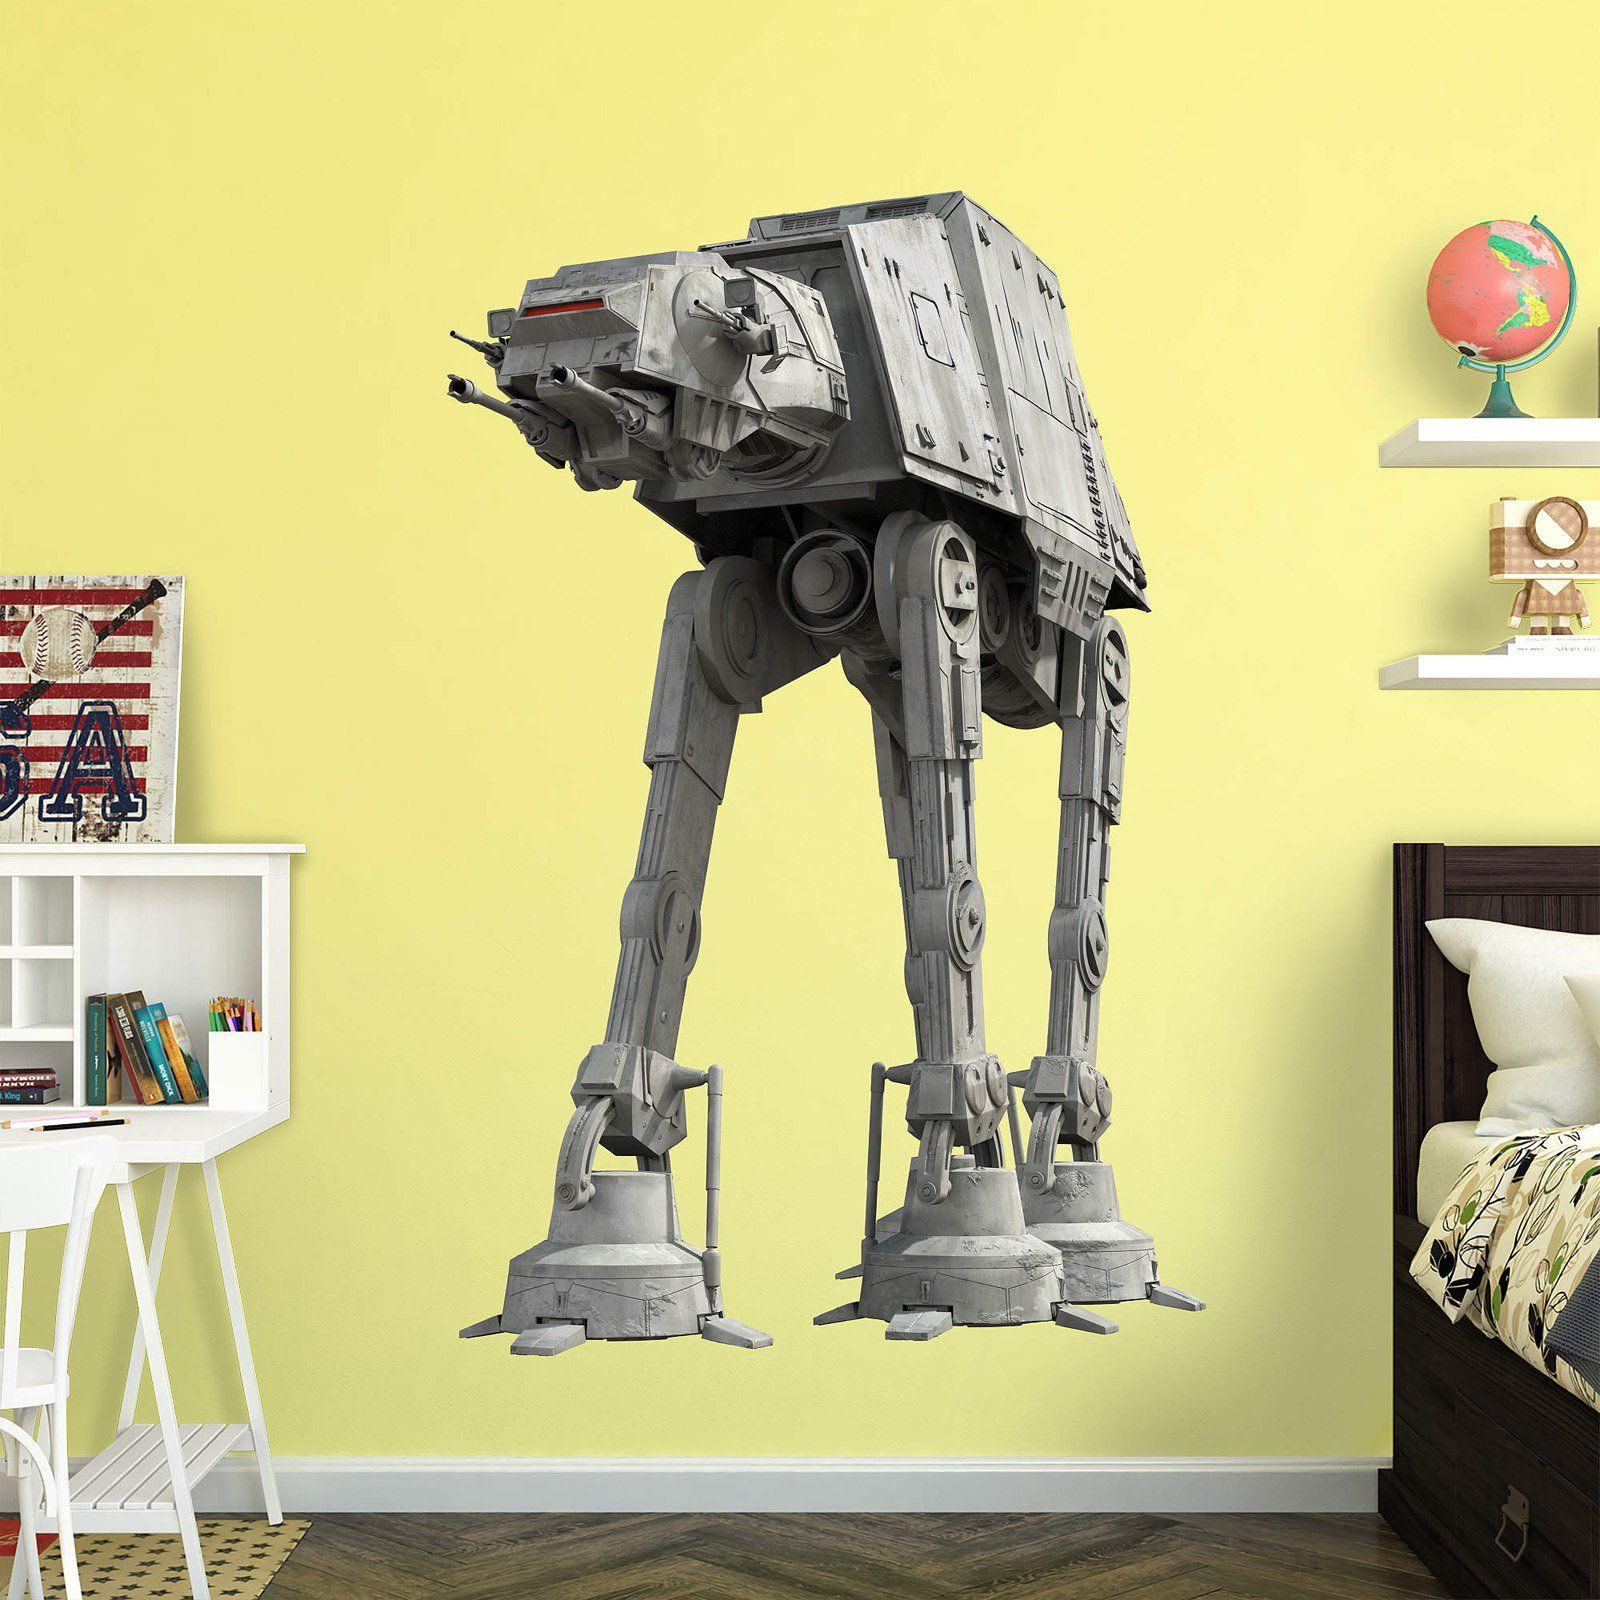 Fathead Star Wars AT-AT Wall Decal - 92-92115 | Products | Pinterest ...